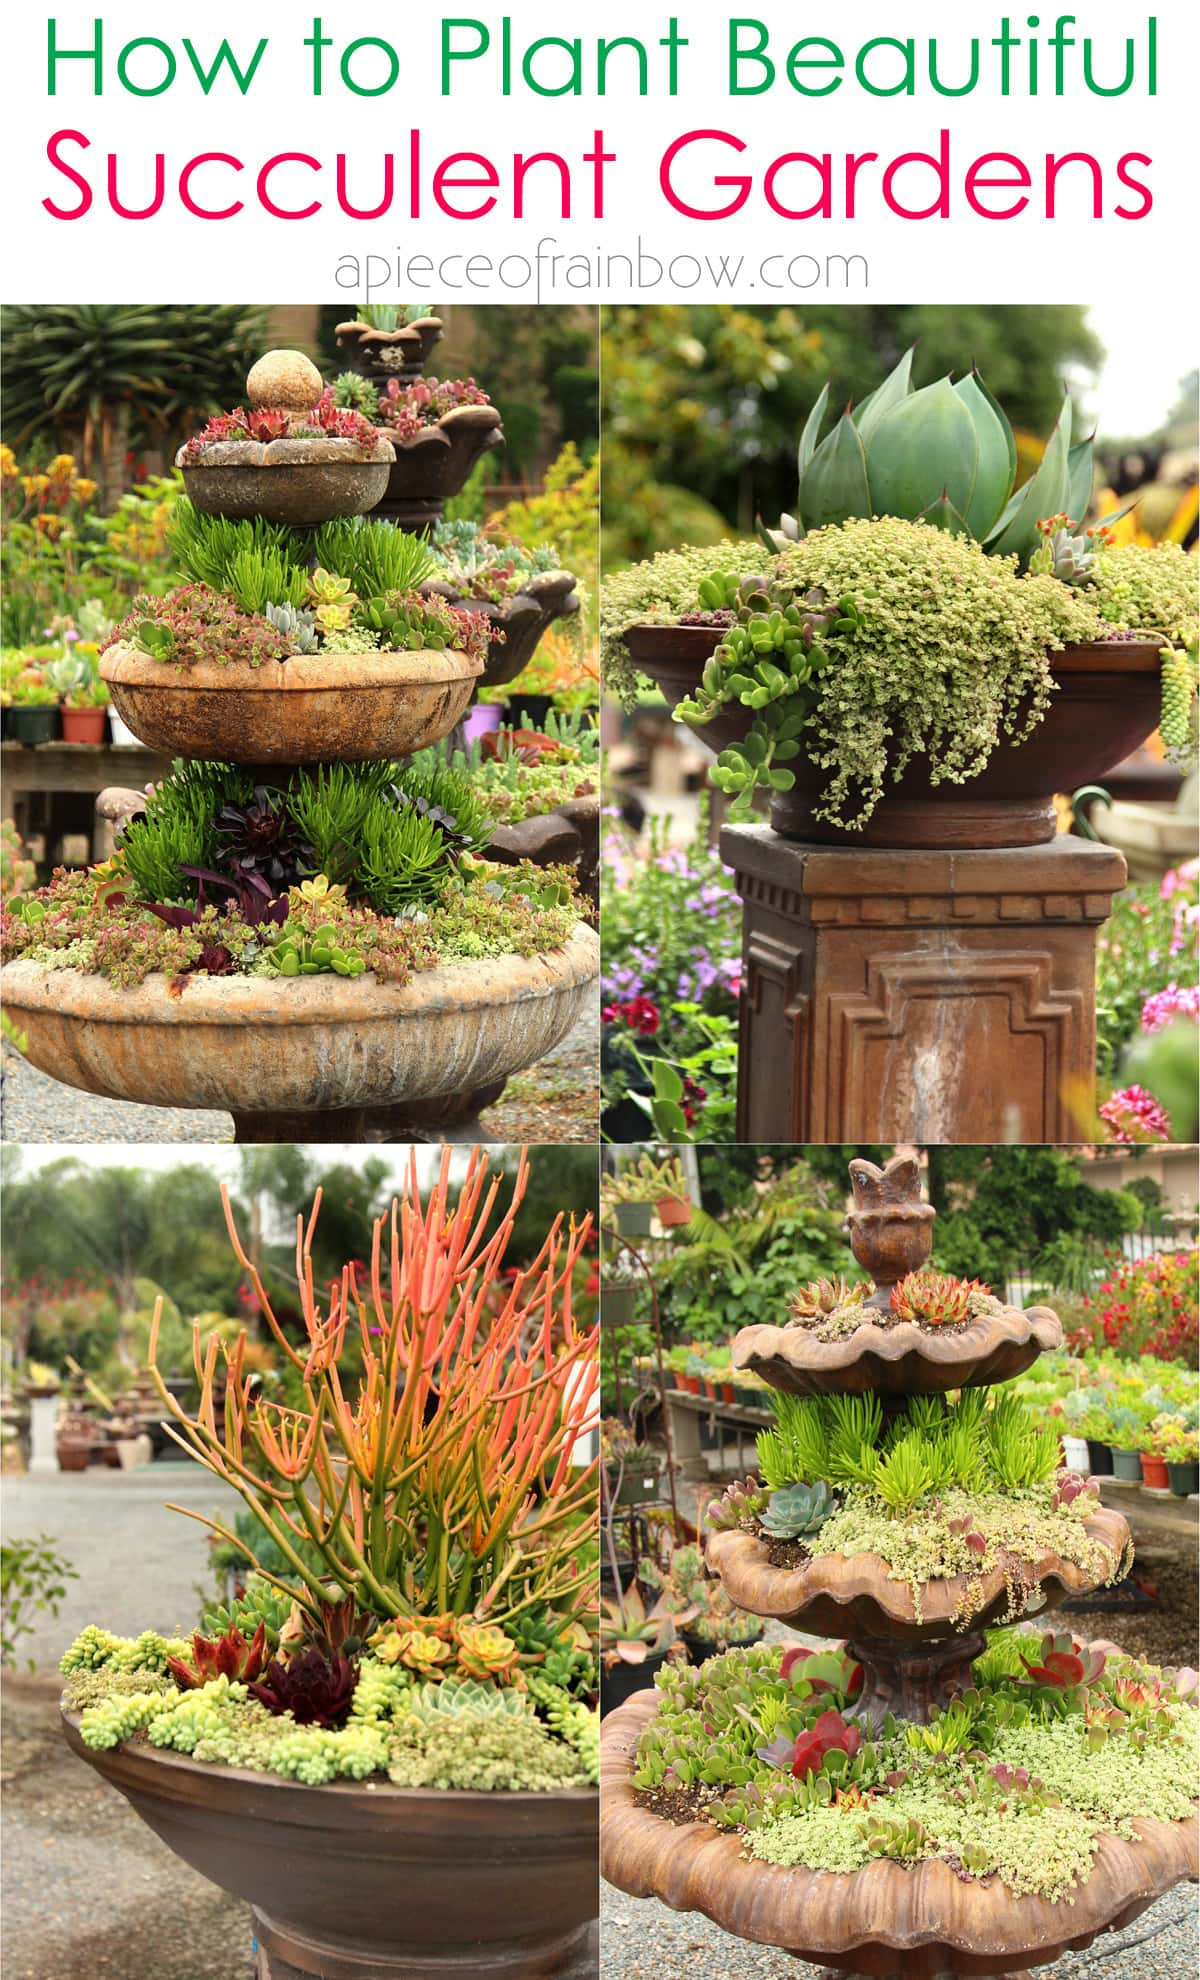 How to plant beautiful & healthy succulent gardens in 5 easy steps! Best design & care tips on sun, soil, water, varieties & container ideas.